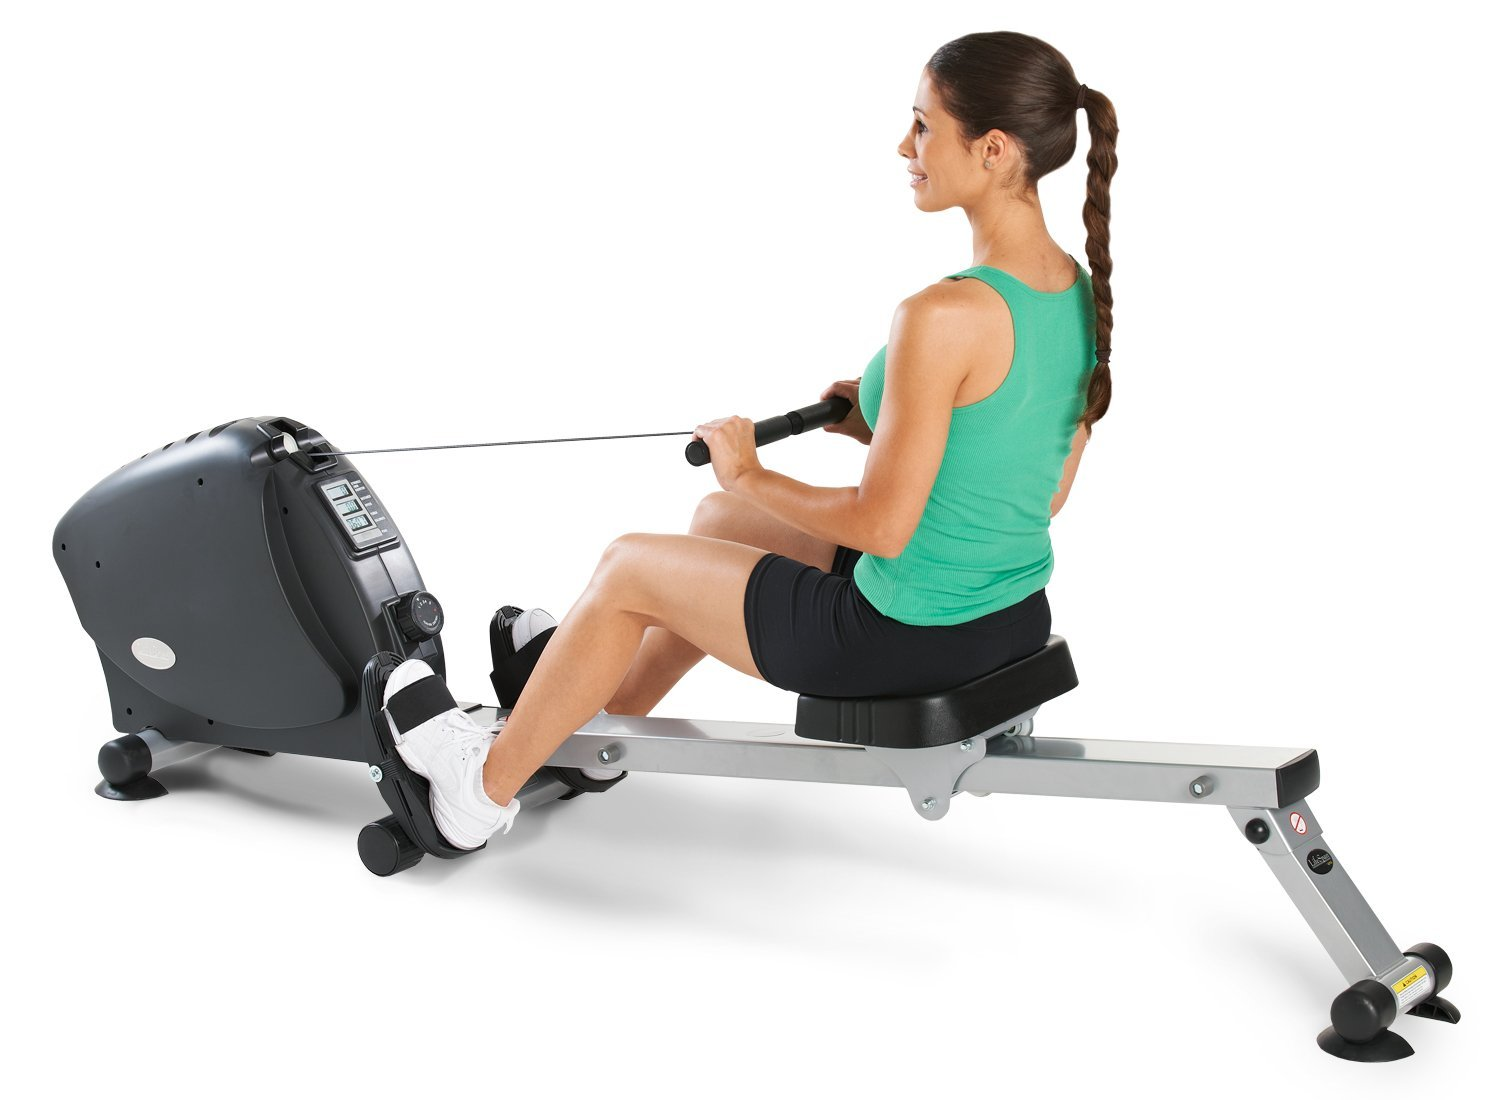 workout gear woman rowing machine